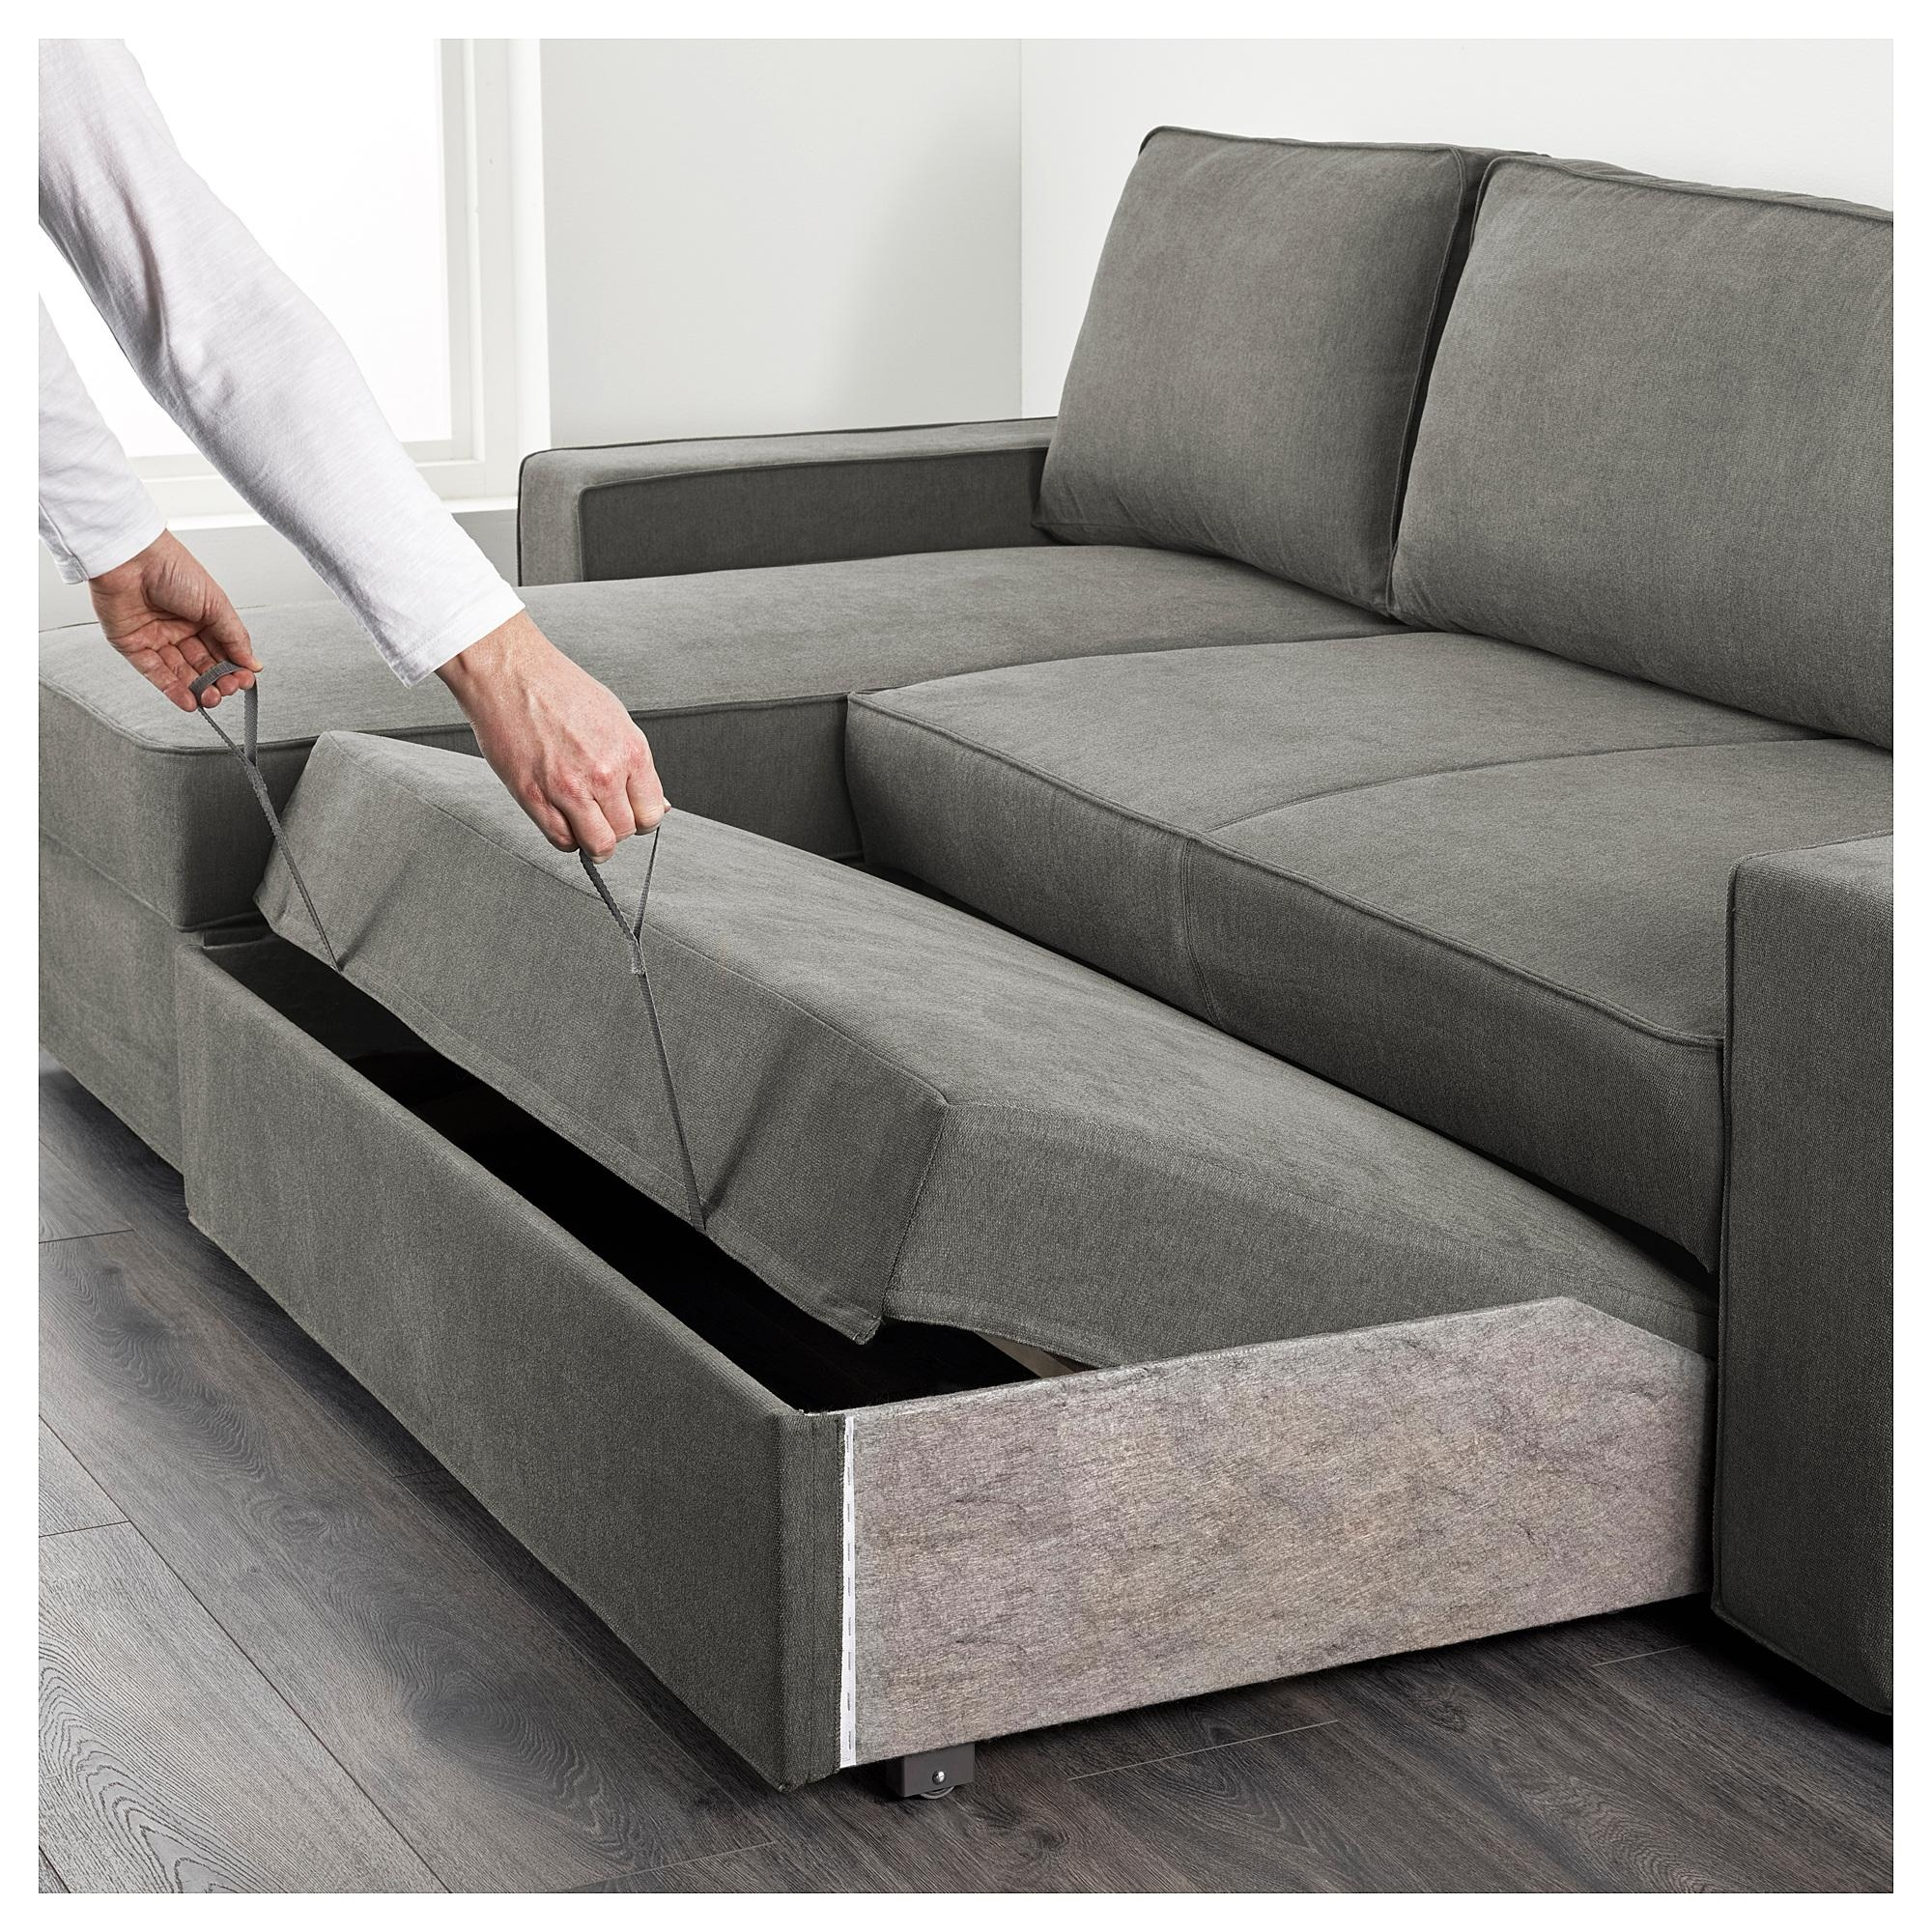 Vilasund Sofa Bed With Chaise Longue Borred Grey Green – Ikea For Chaise Longue Sofa Beds (View 3 of 20)